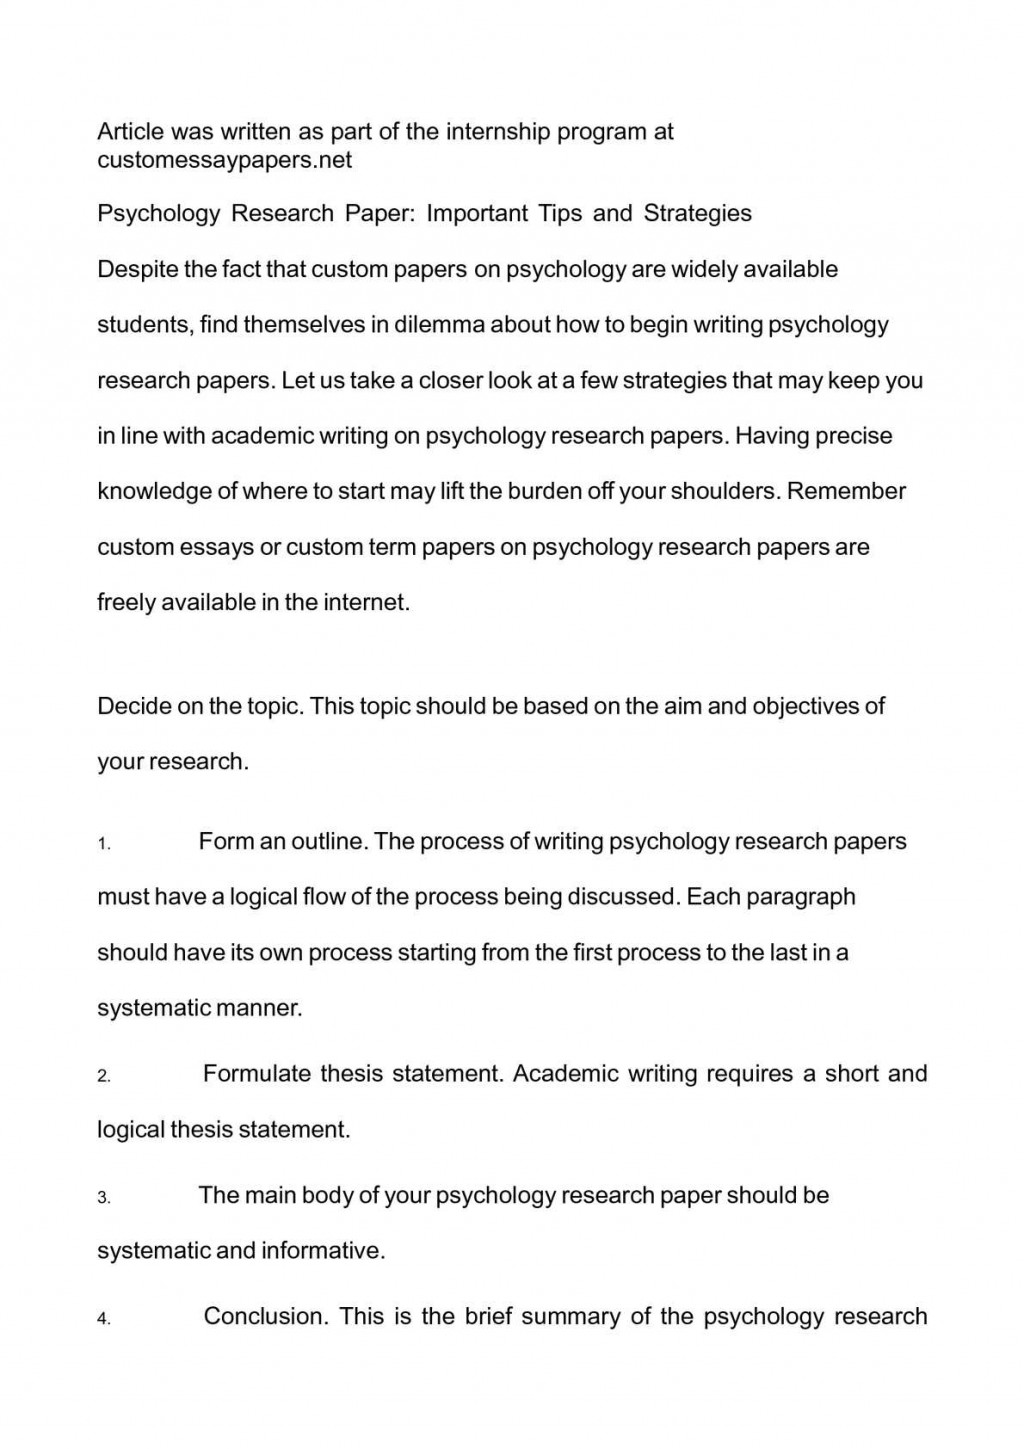 019 Psychology Research Paper Topics Striking On Dreams Depression For High School Students Large